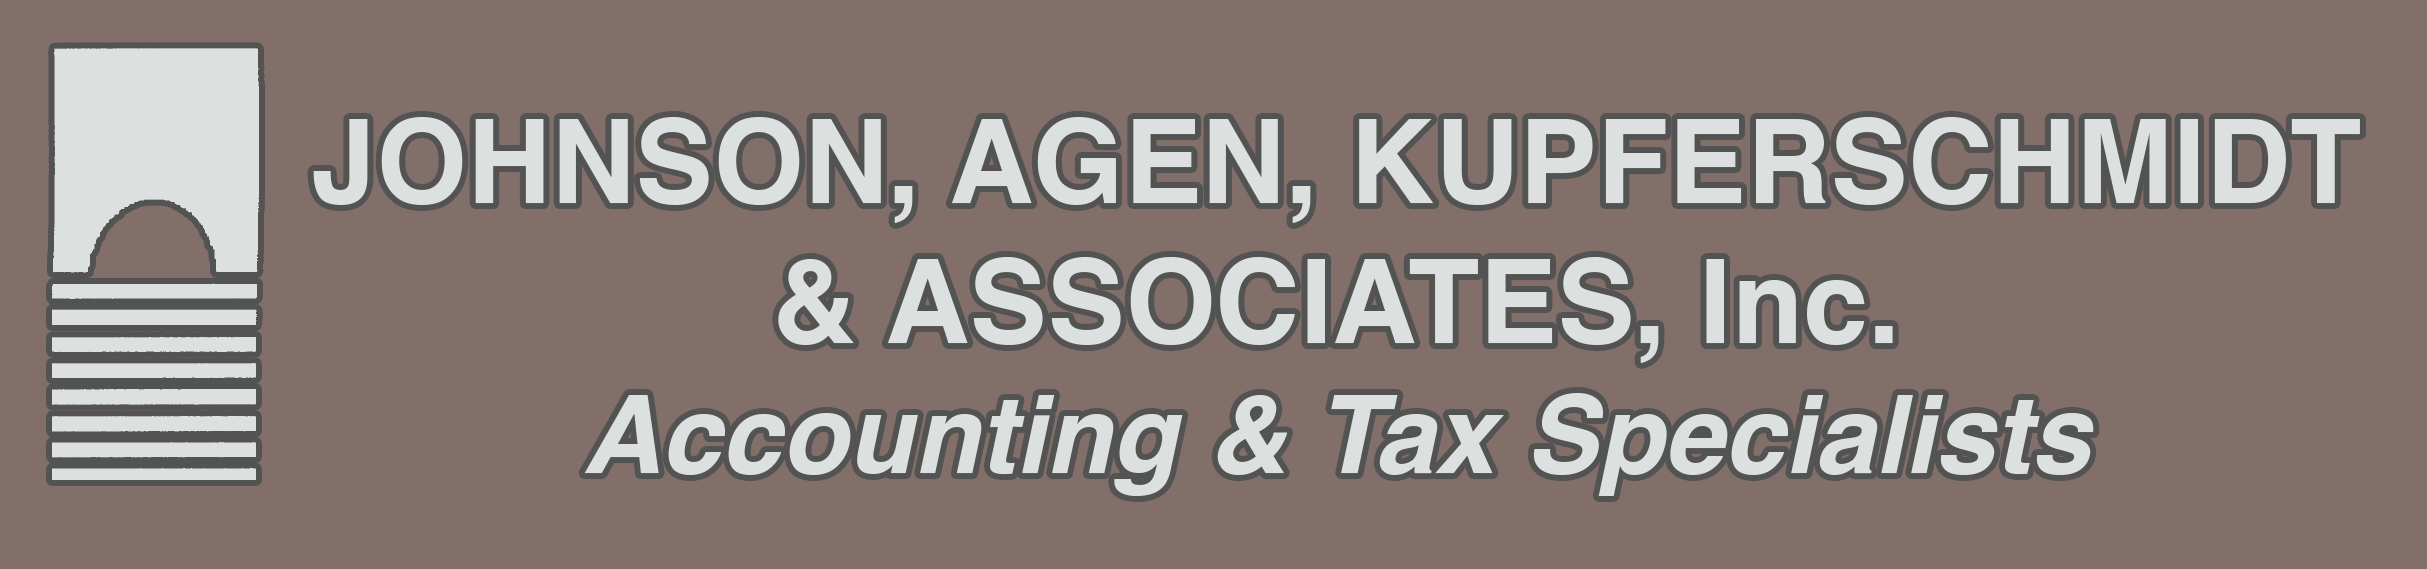 Johnson, Agen, Kupferschmidt & Associates Inc.